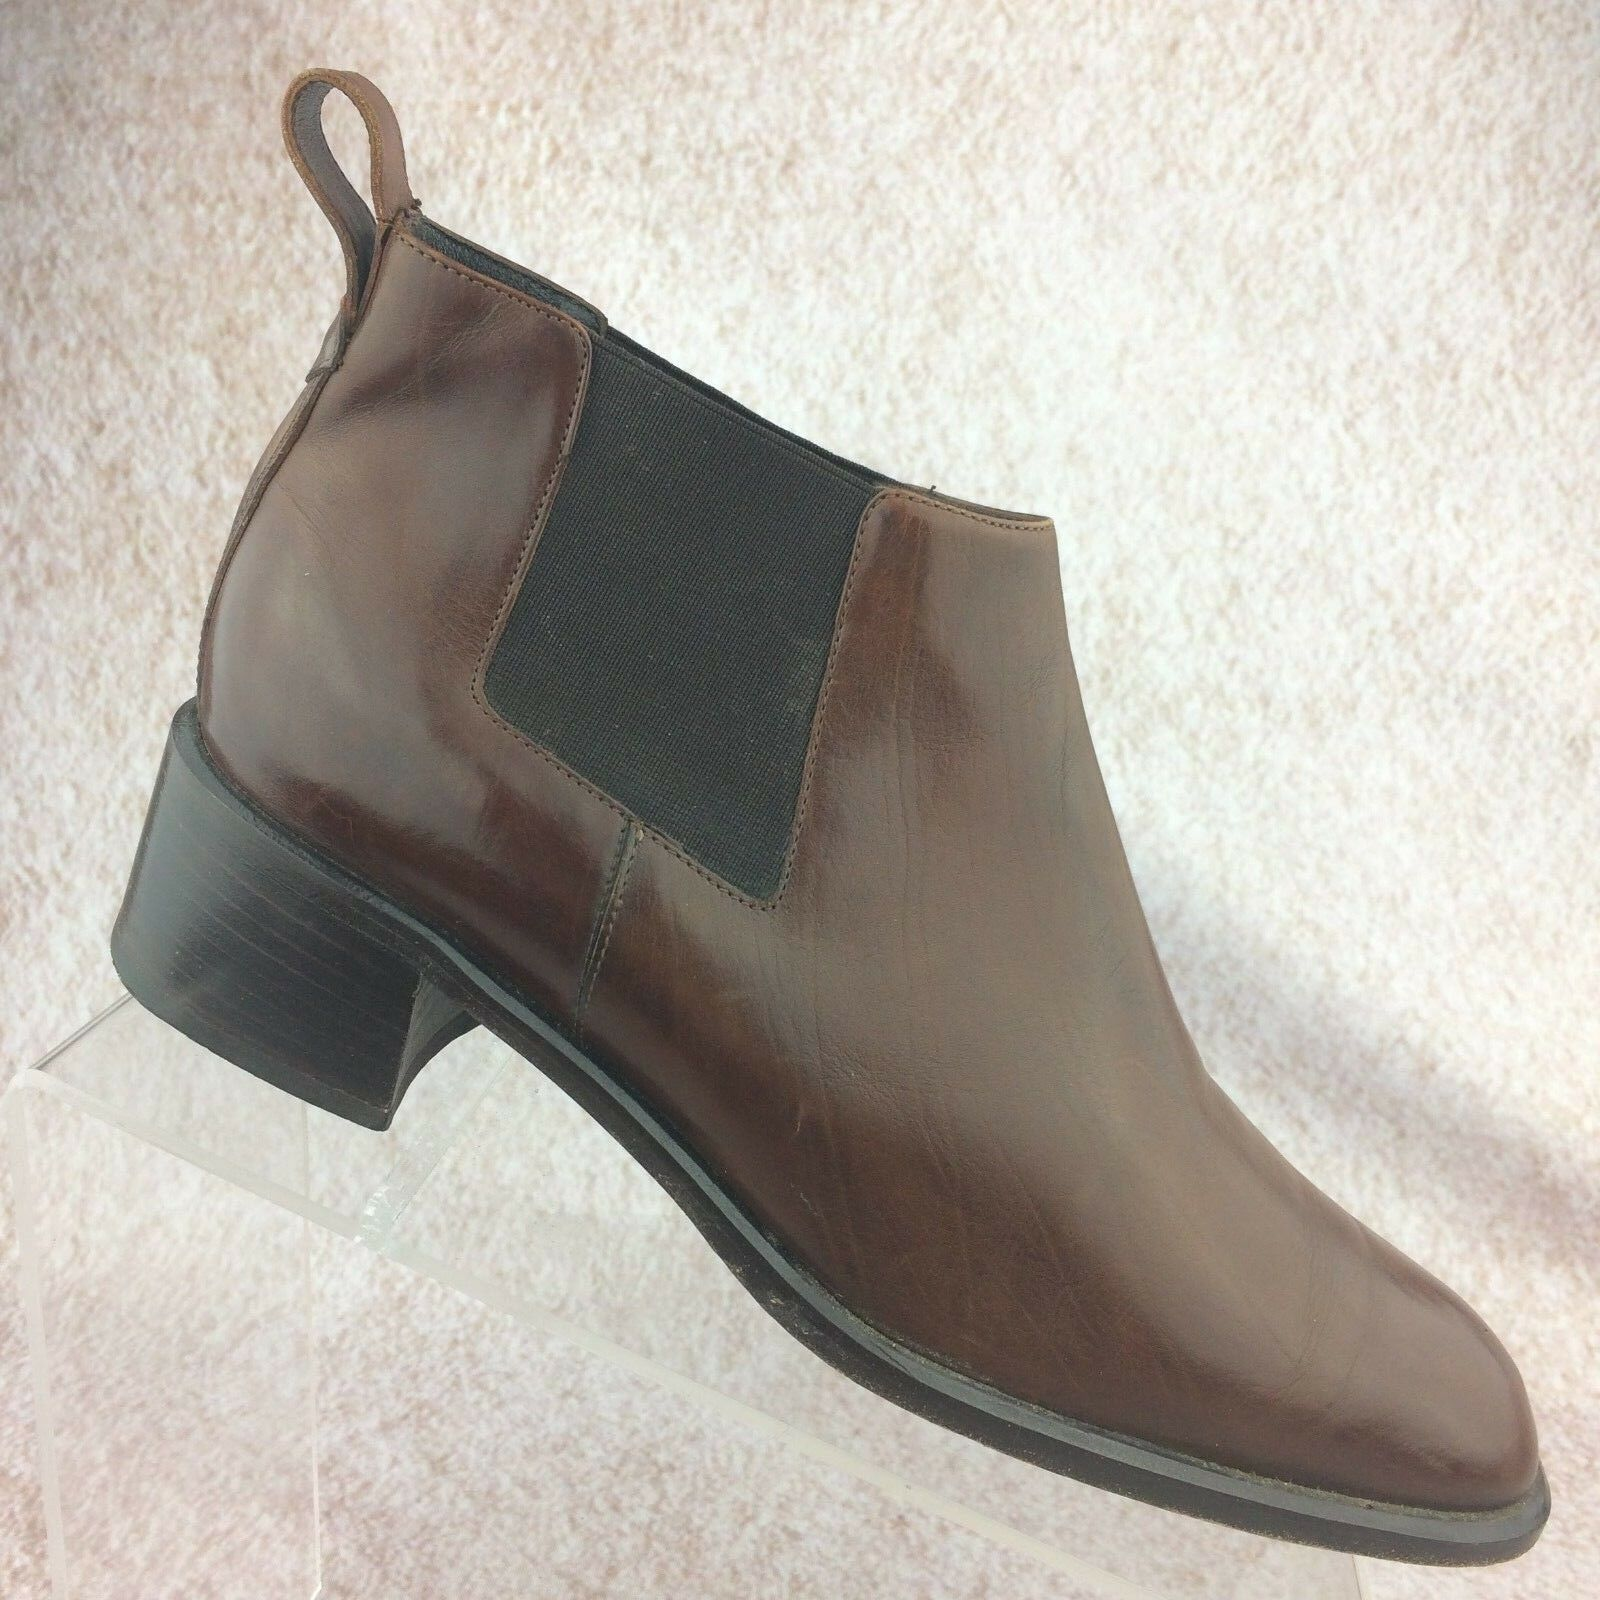 Cole Haan Women's Mattea Chelsea Ankle Boot Brown Leather Pull On Paddock - 10AA